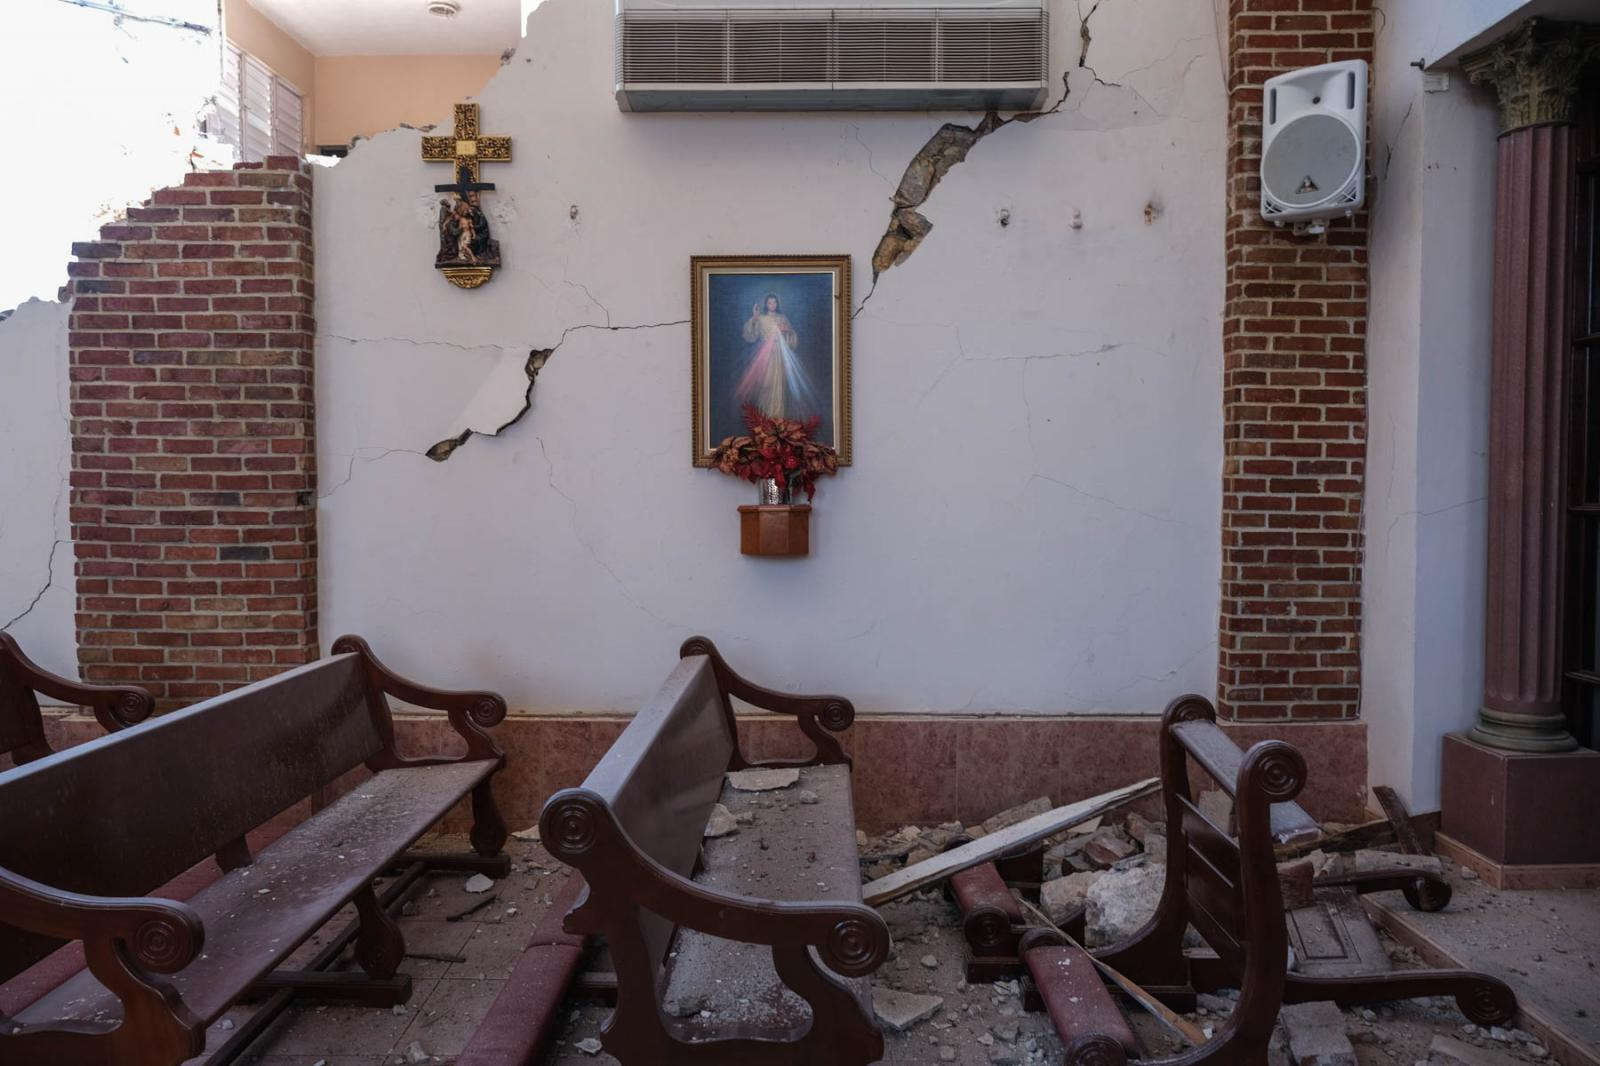 On the morning of January 7th, 2020, two earthquakes of 6.6 and 6.0 were reported in the southwestern region of Puerto Rico. In the town of Guayanilla, the nearest town to the epicenter, buildings including the Iglesia Inmaculada Concepción, were torn down. Gabriella N. Báez for CNN.